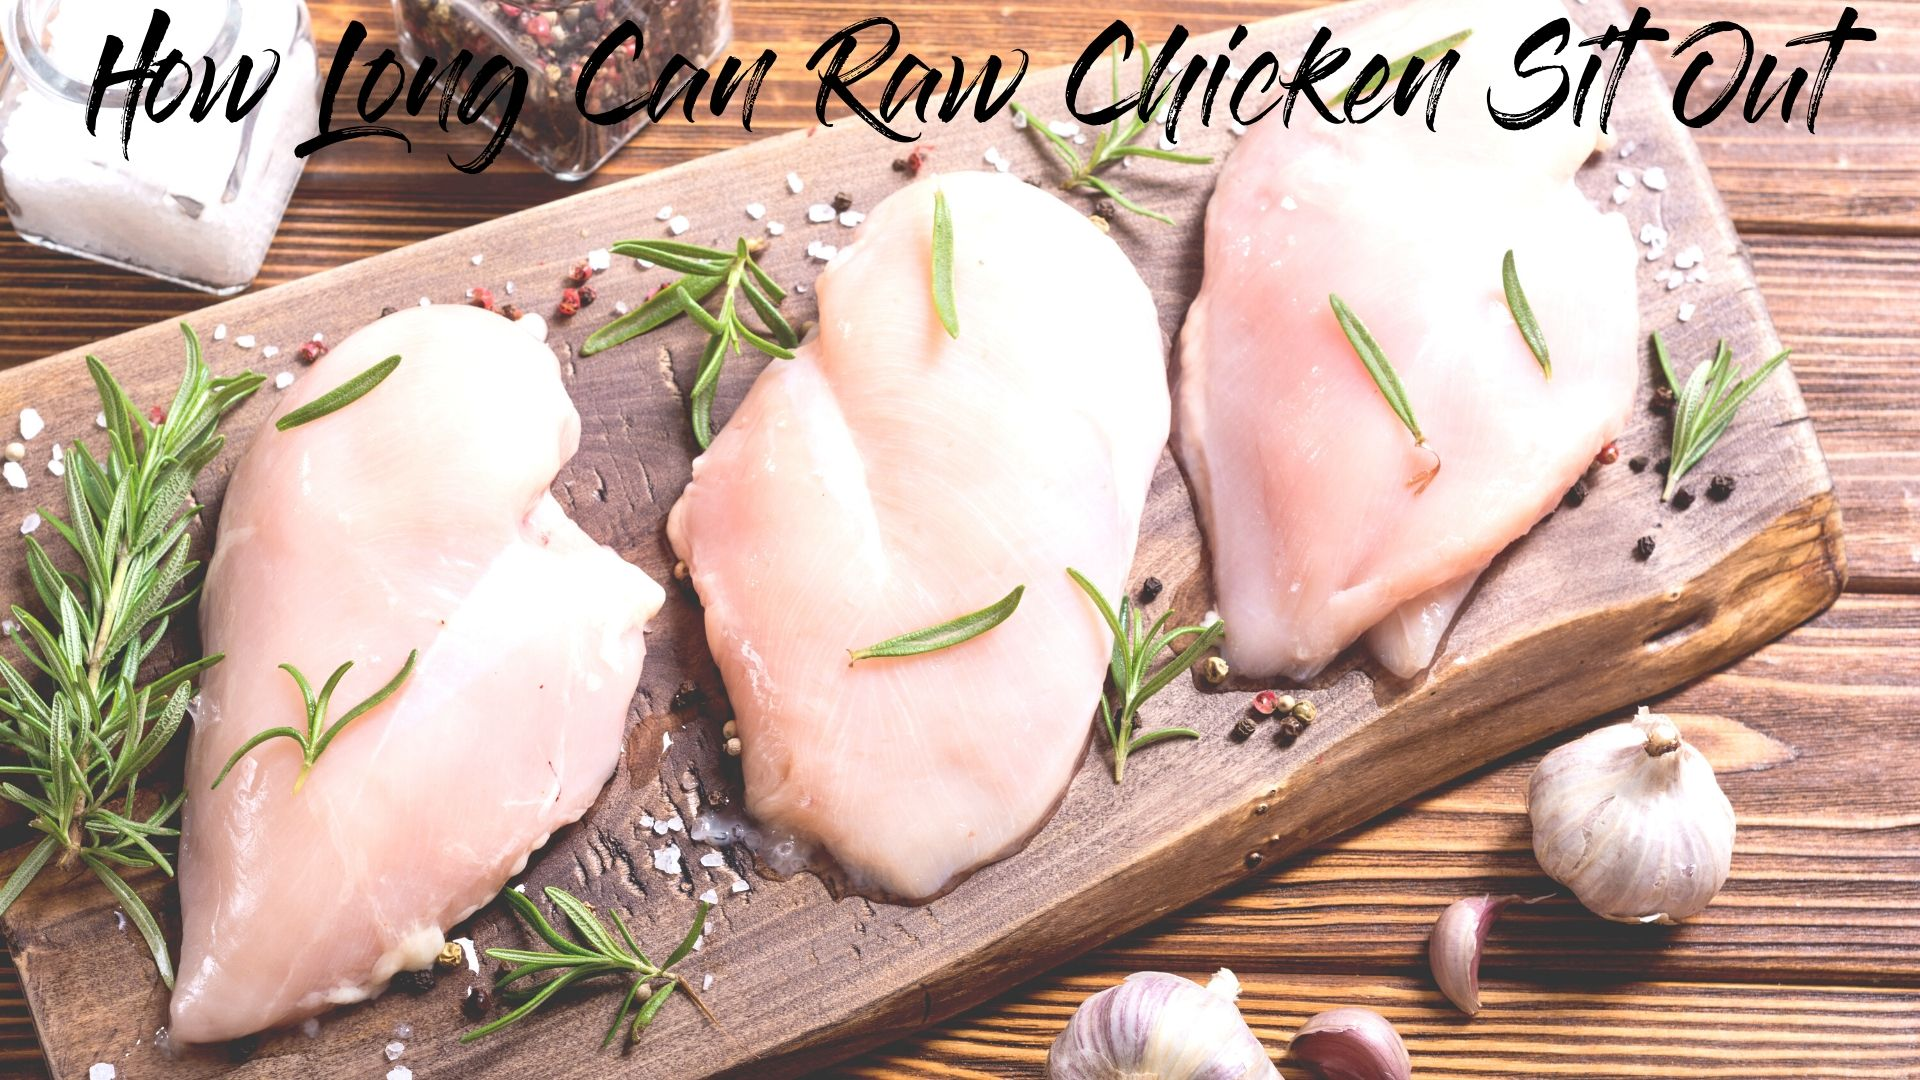 How Long Can Raw Chicken Sit Out